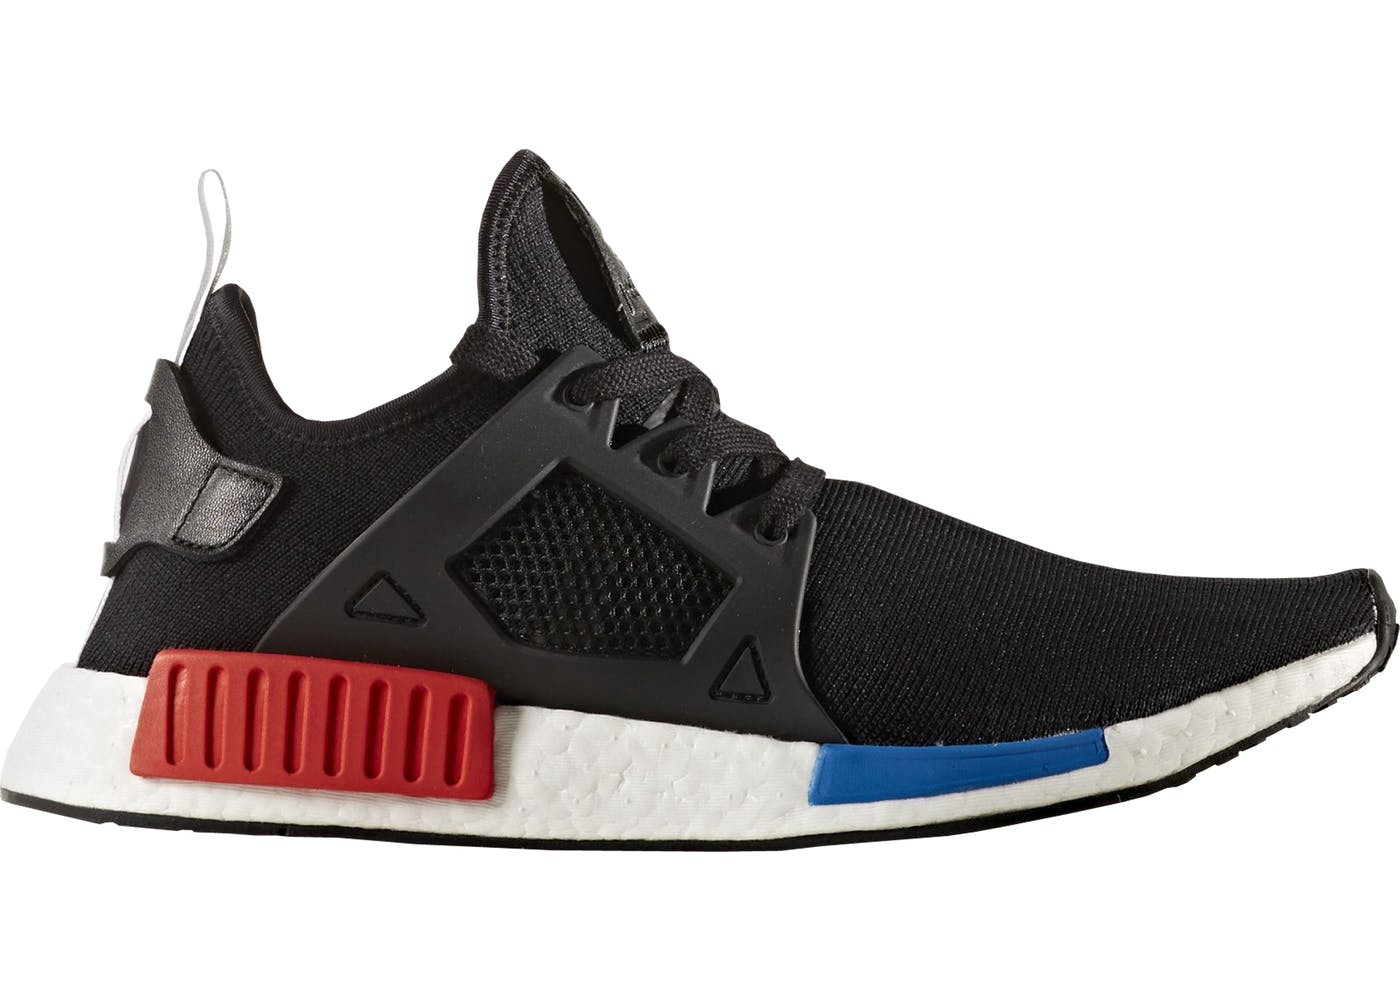 Vlog 18 Adidas NMD XR1 PK Olive kids men women review